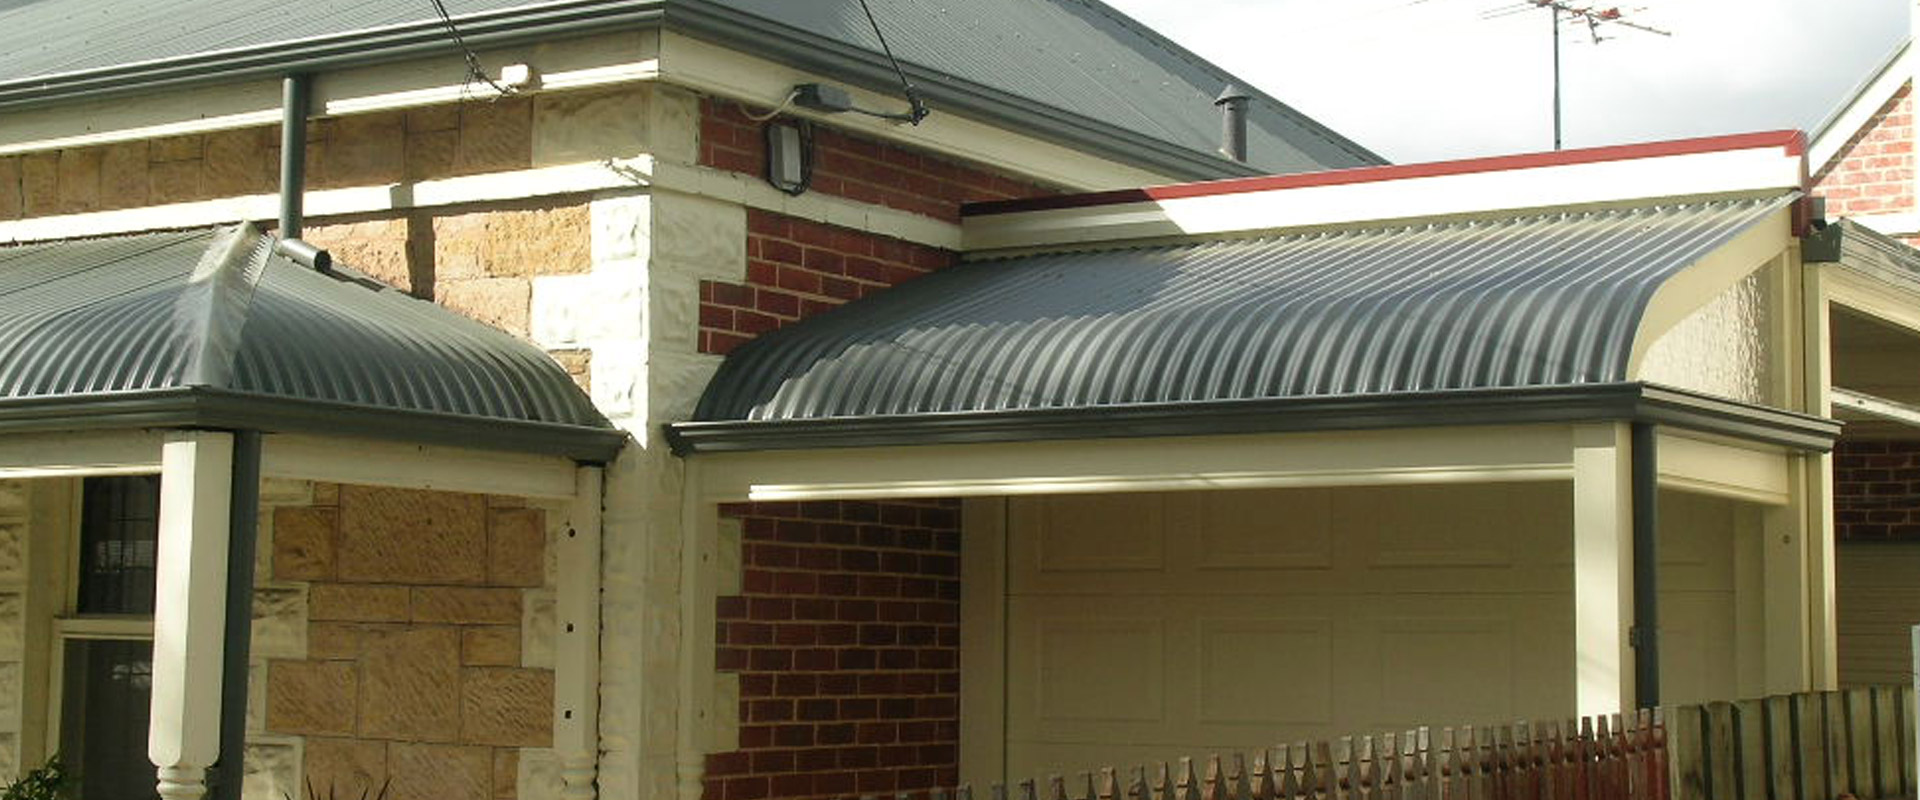 Specialising in Bullnosed Verandahs and Carports across Adelaide